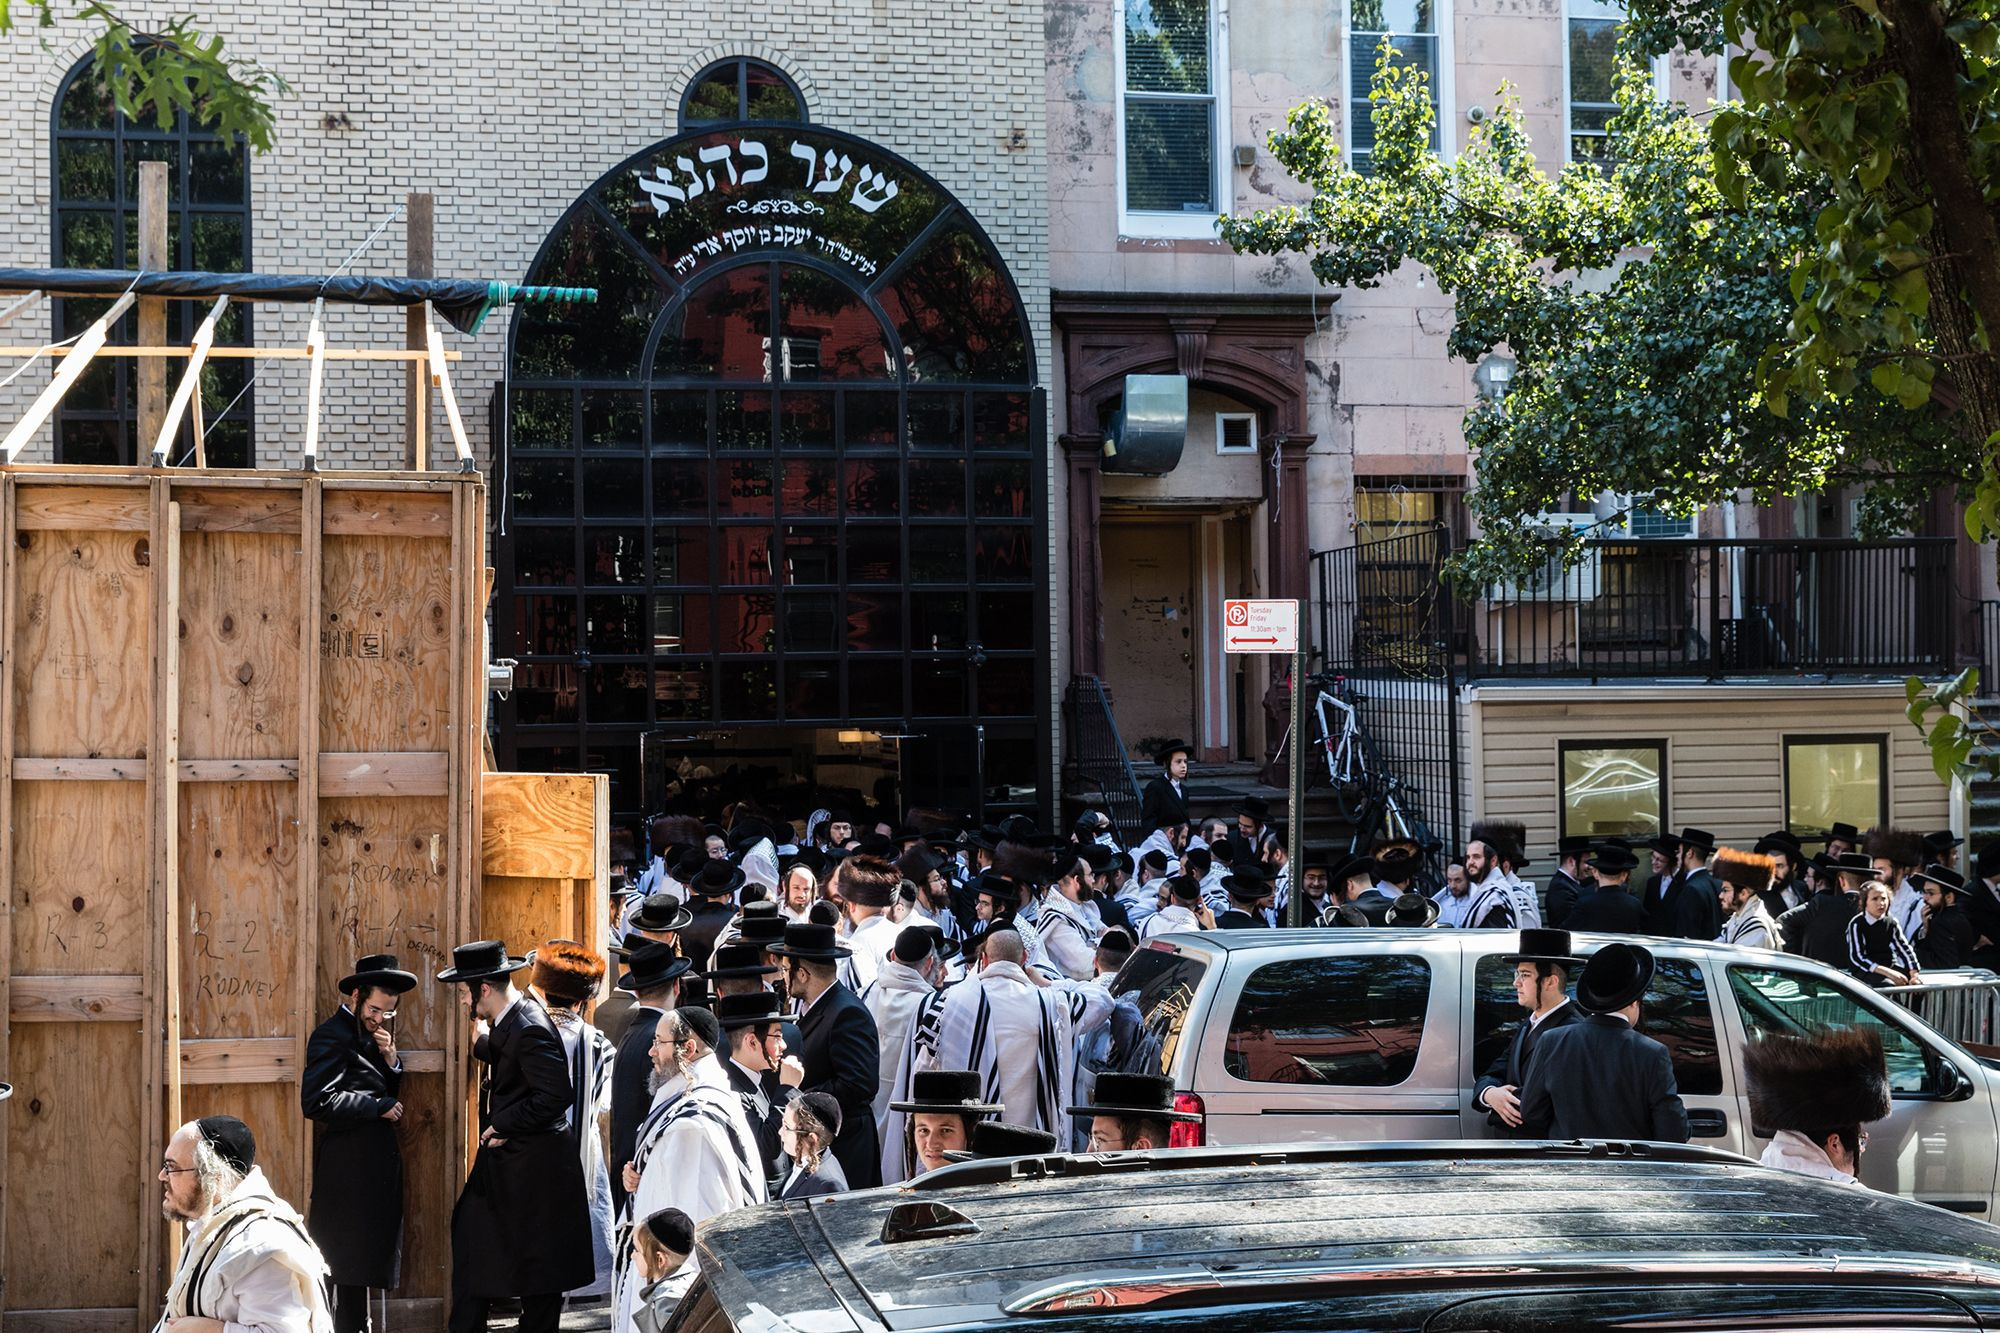 An unorthodox Jewish wedding was forced into halt after fears of gathering around 10,000 people